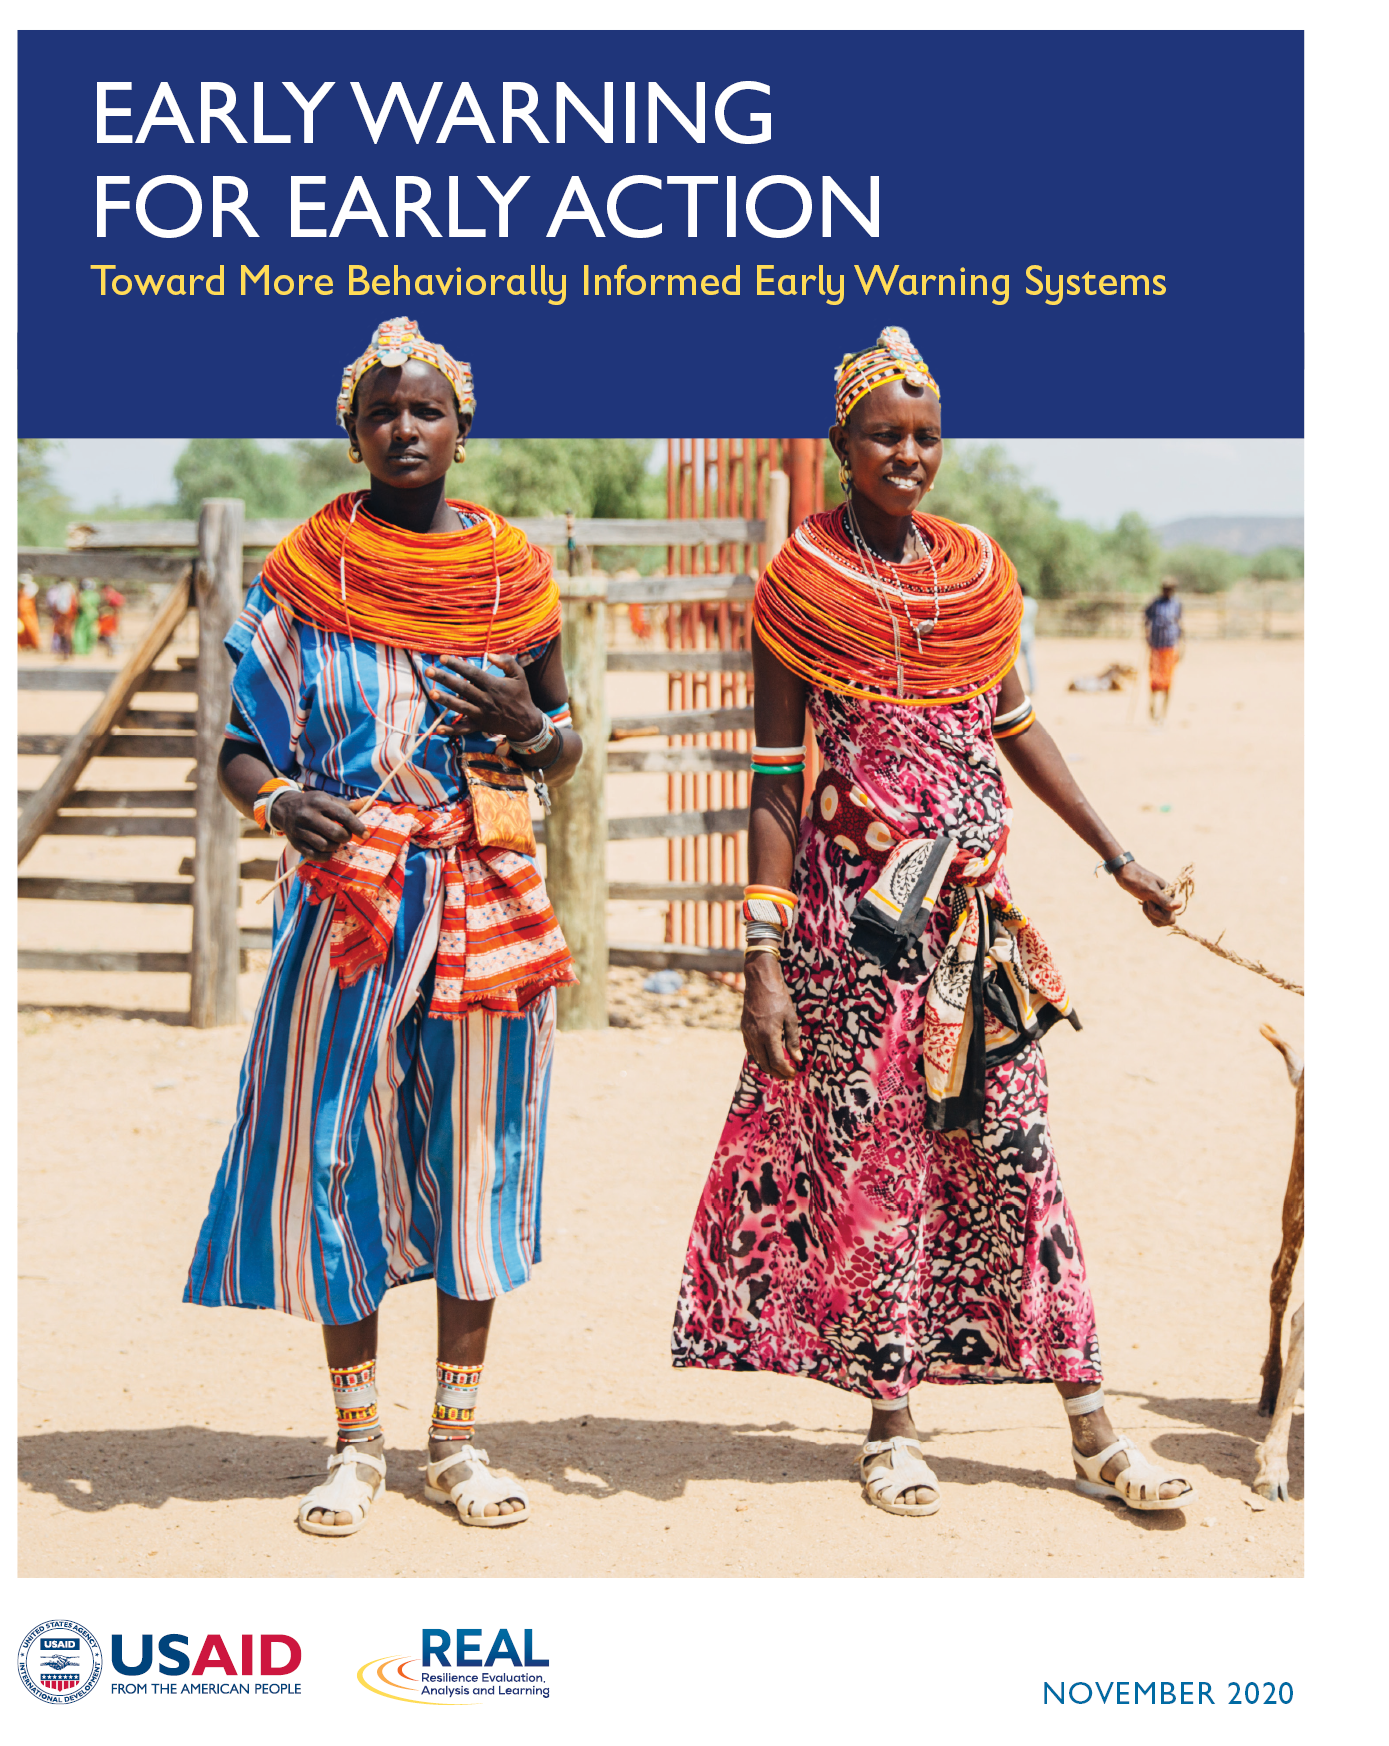 Cover image of Early Warning for Early Action